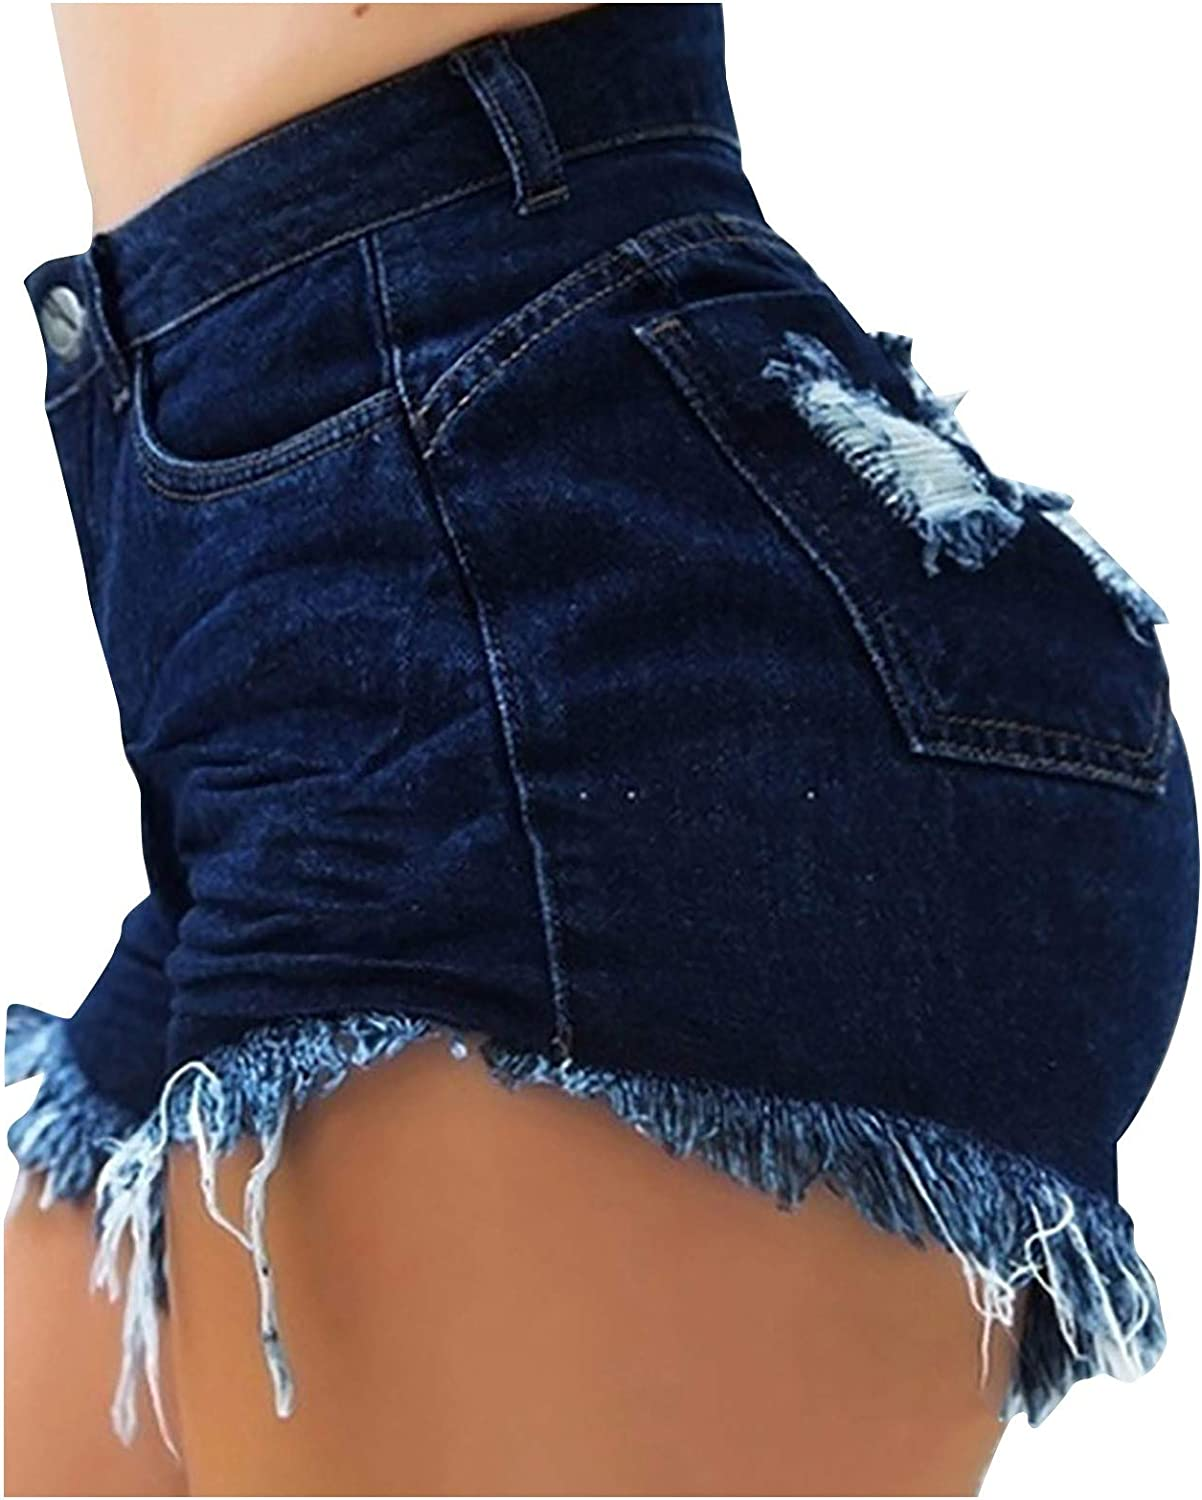 Cut-Off Denim Shorts for Women Frayed Distressed Jean Short Cute Mid Rise Ripped Hot Shorts Comfy Stretchy